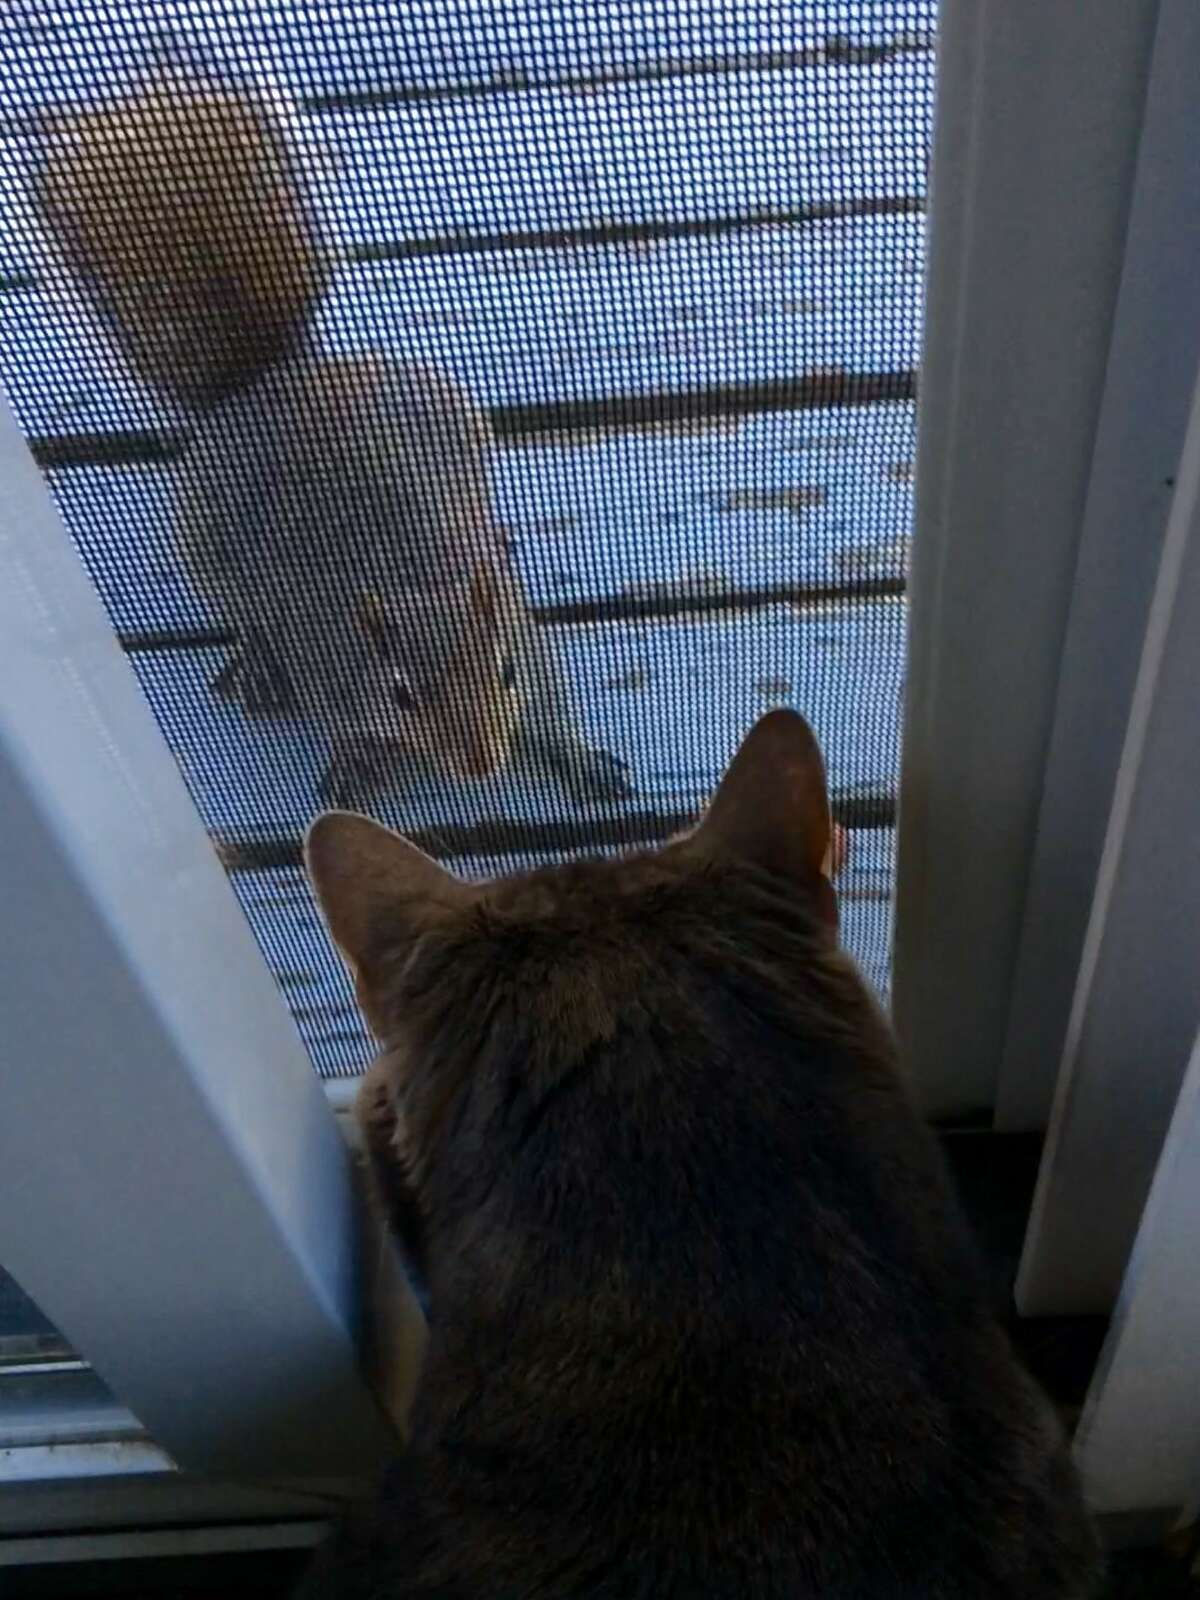 """Anthony Chouffi said this momentous staring contest at his Clifton Park home took a little lucky timing to capture. He speculates that the squirrel was never scared ? """"probably due to screen between them."""""""